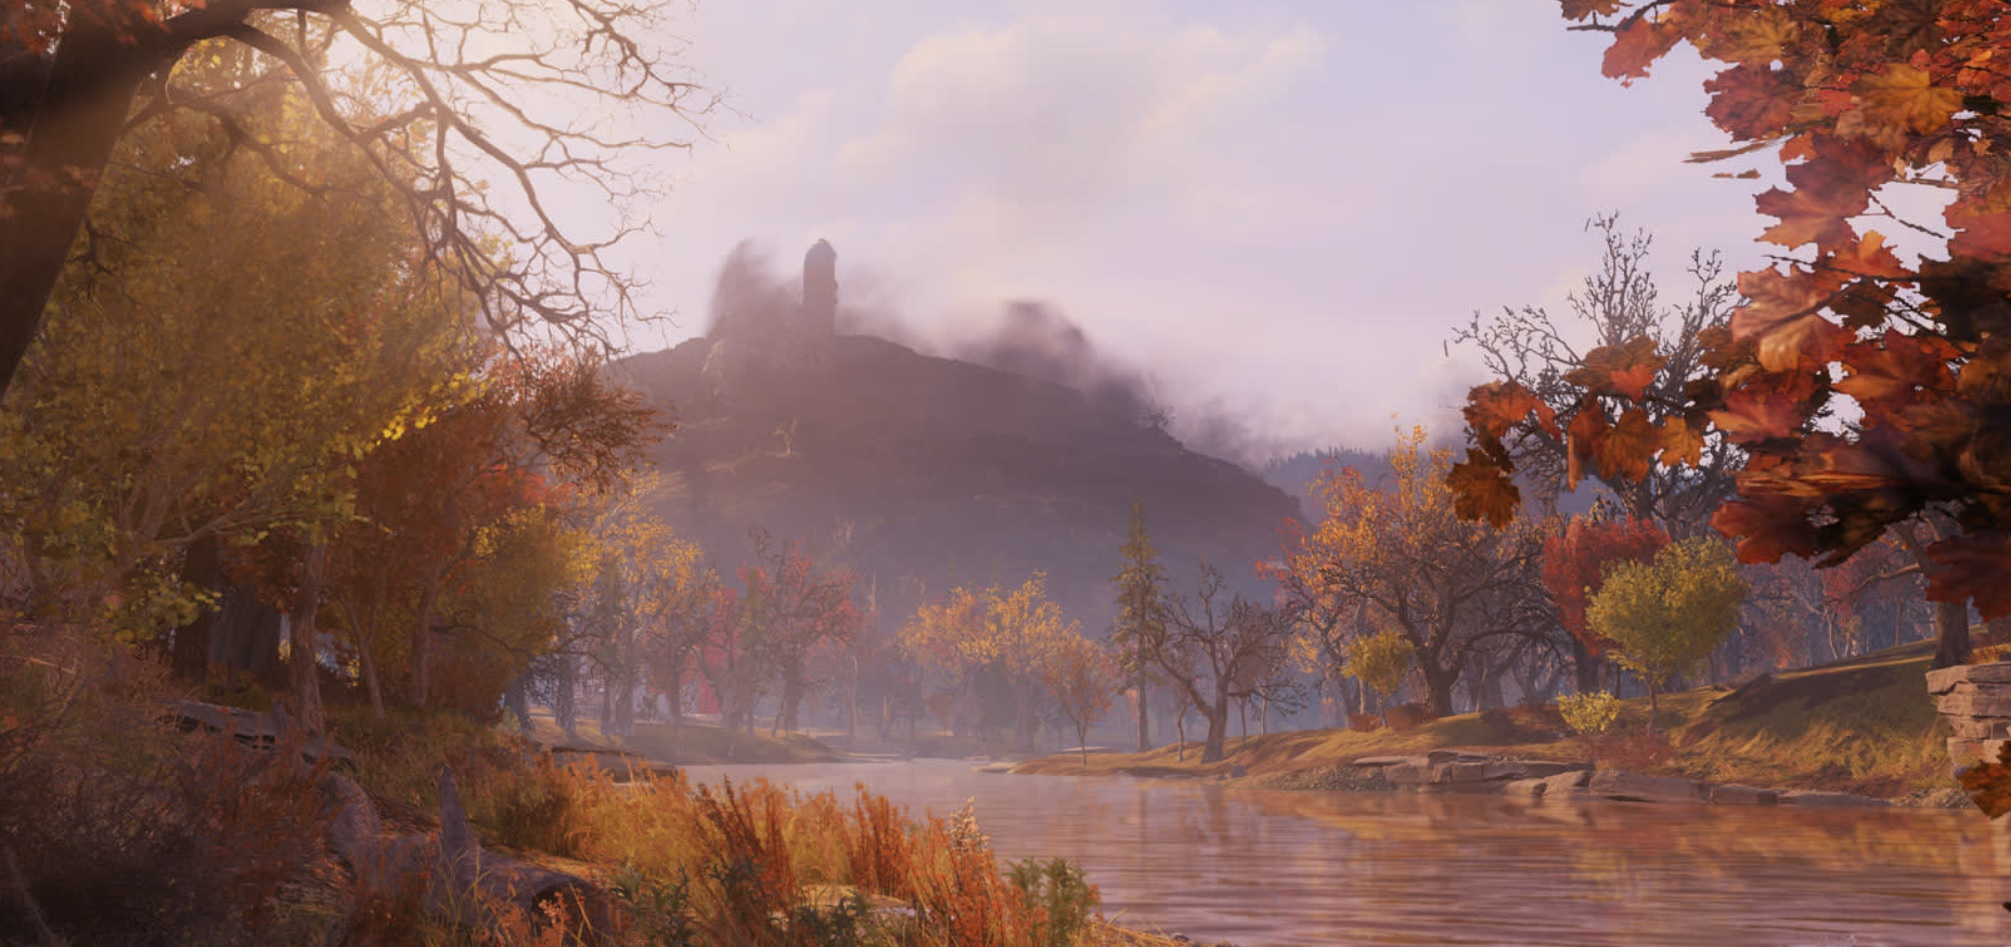 Fallout 76 is adding incentives for PTS players, Bethesda asks more people to join testing periods screenshot